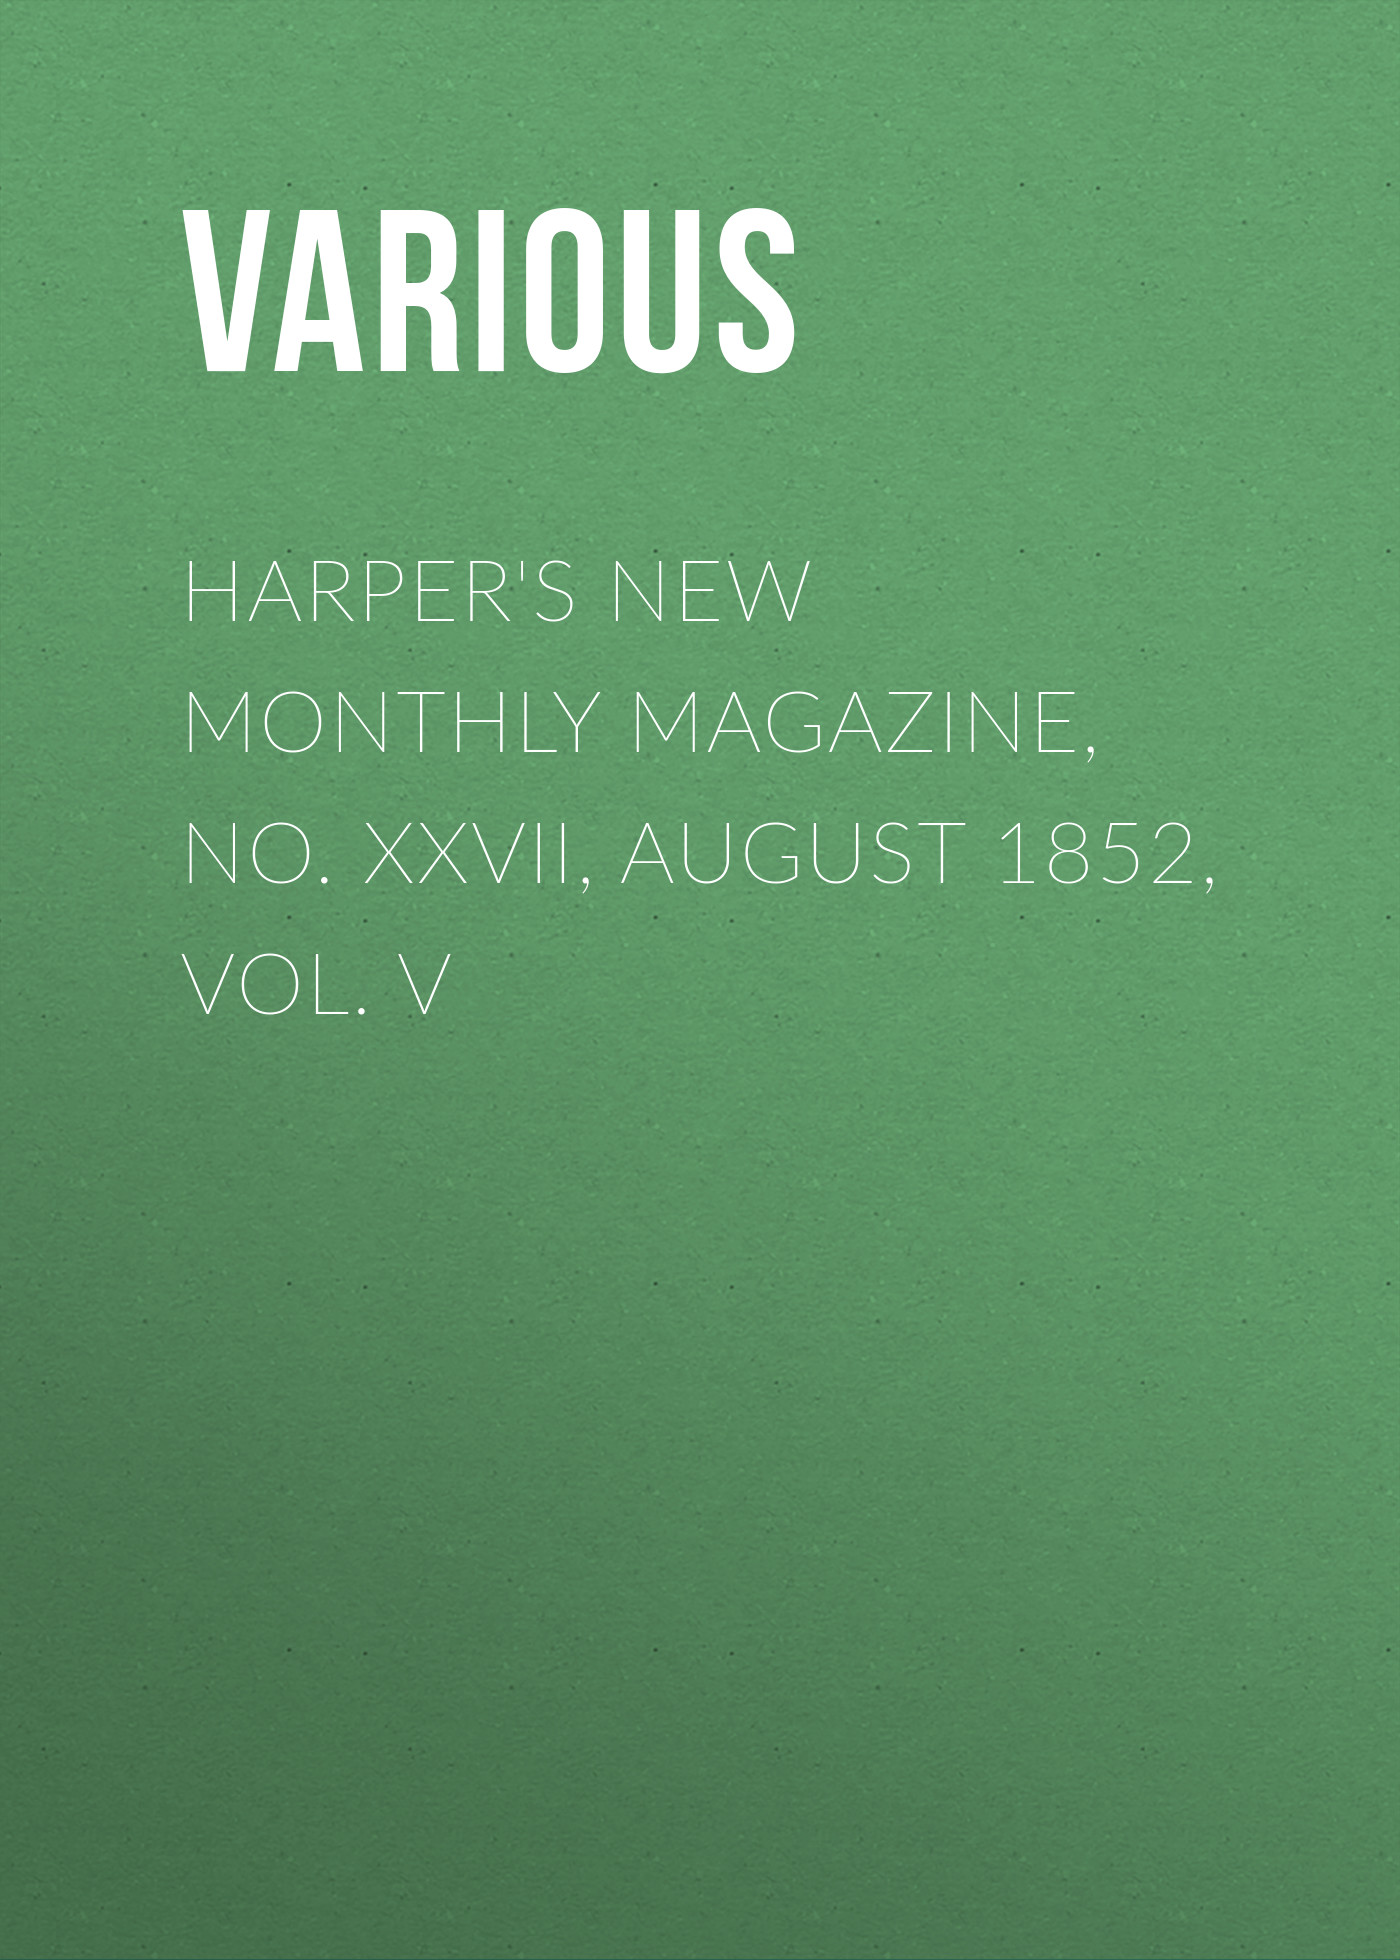 Various Harper's New Monthly Magazine, No. XXVII, August 1852, Vol. V various harper s new monthly magazine vol iv no xx january 1852